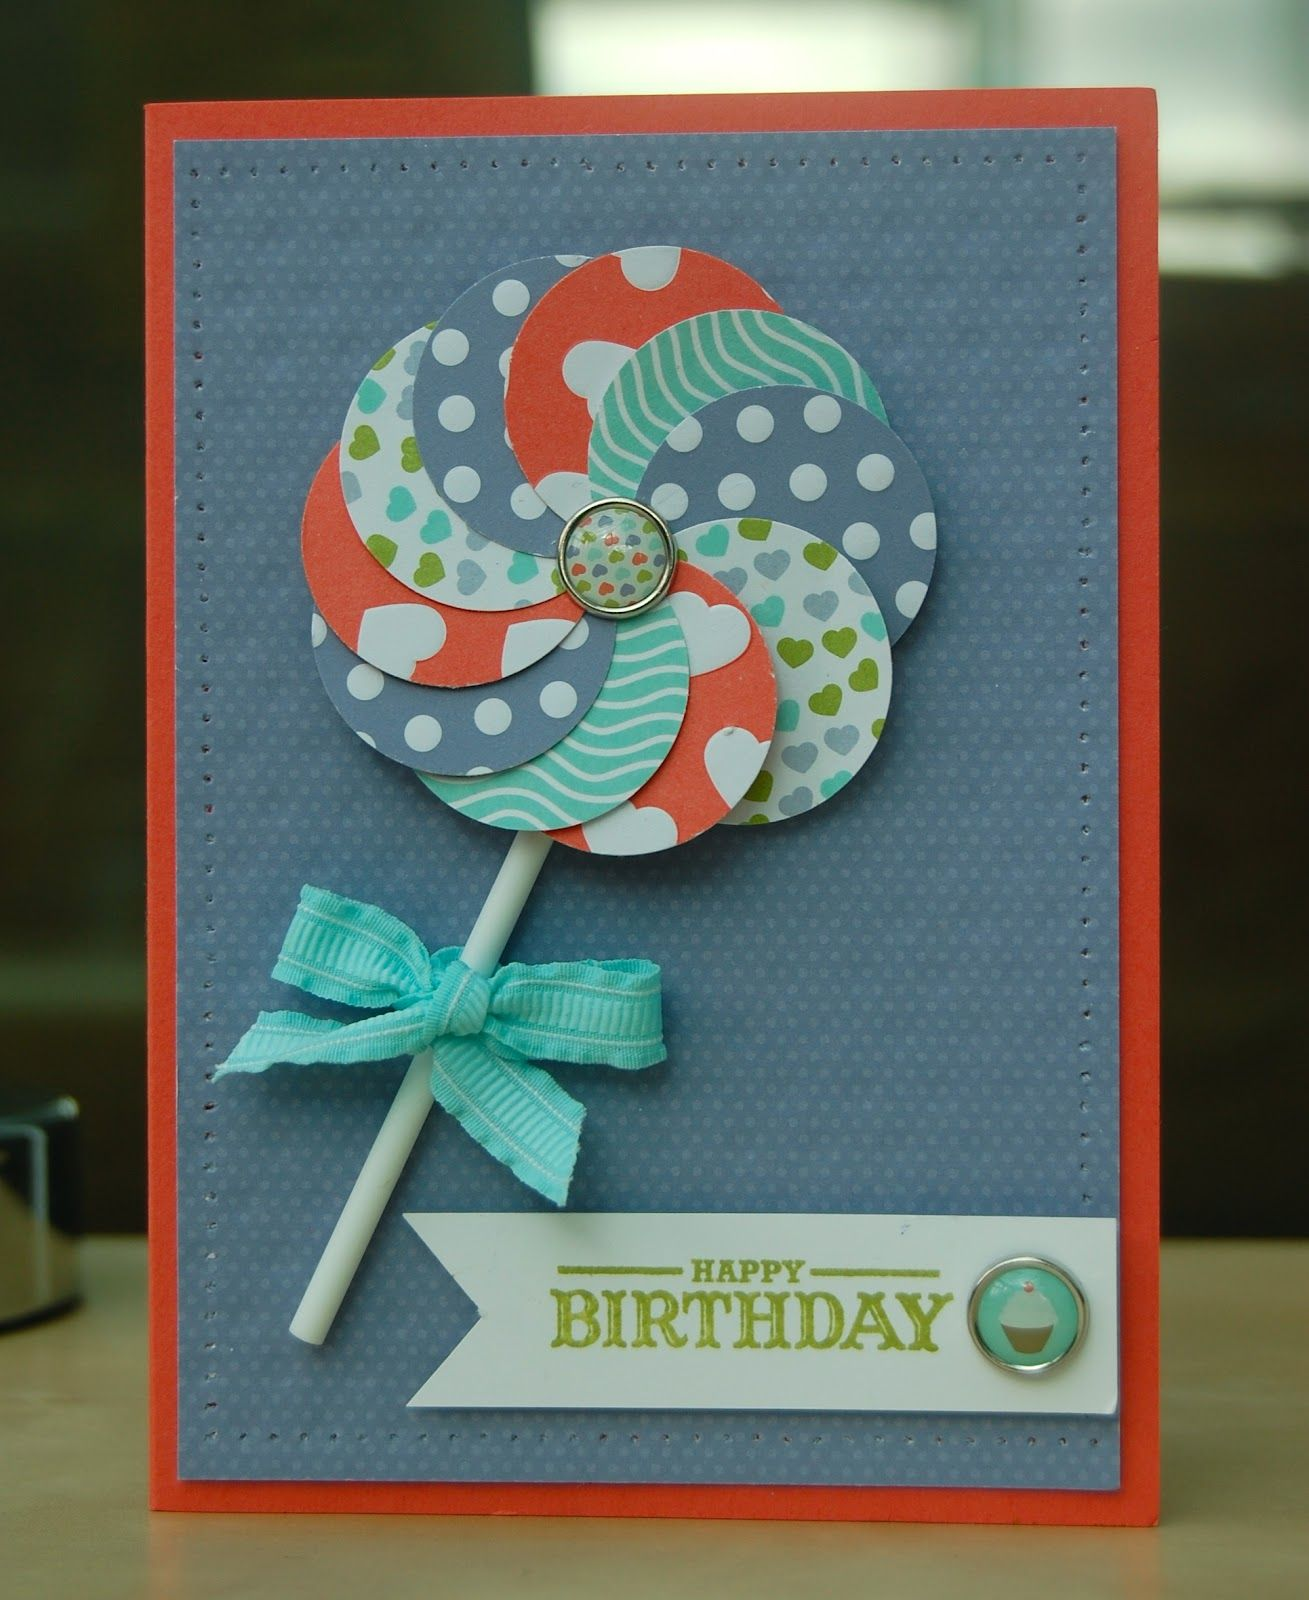 Pin by petra hane on ideen pinterest cards birthday cards and